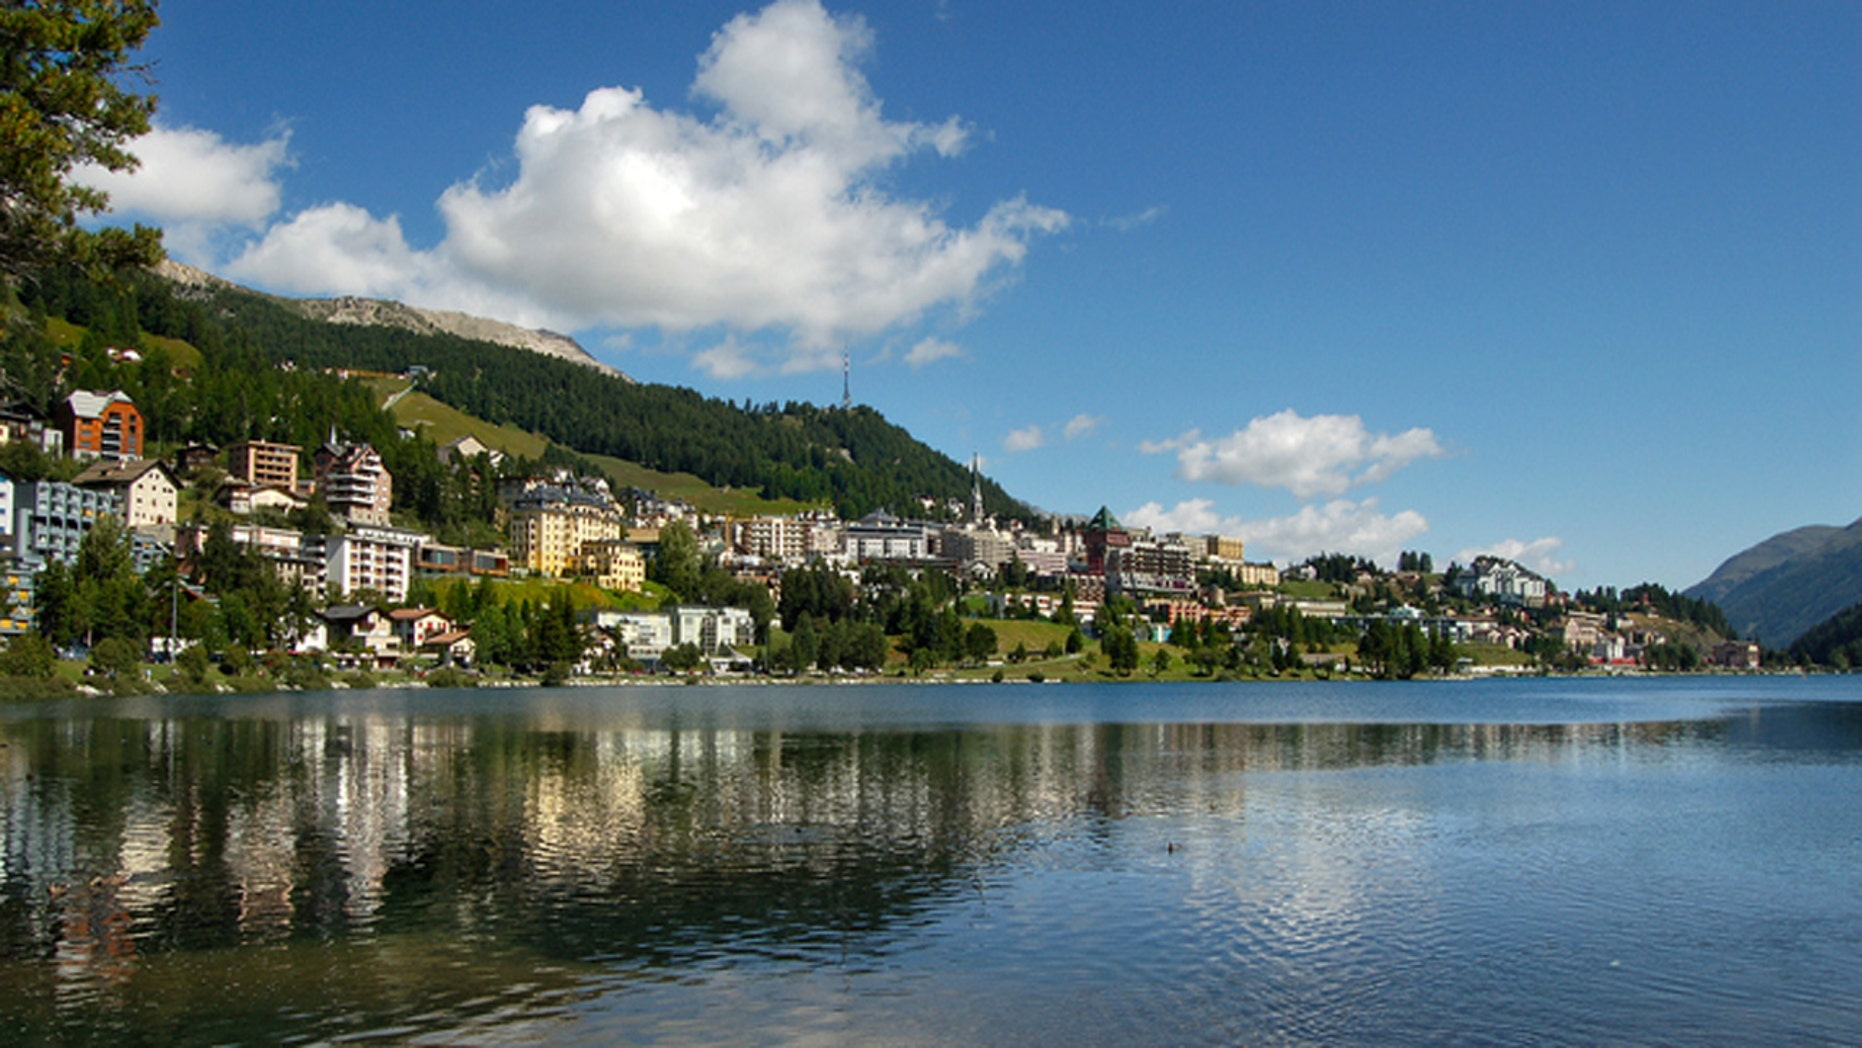 Too pretty to look at? Scenic Swiss village may ban photo taking.